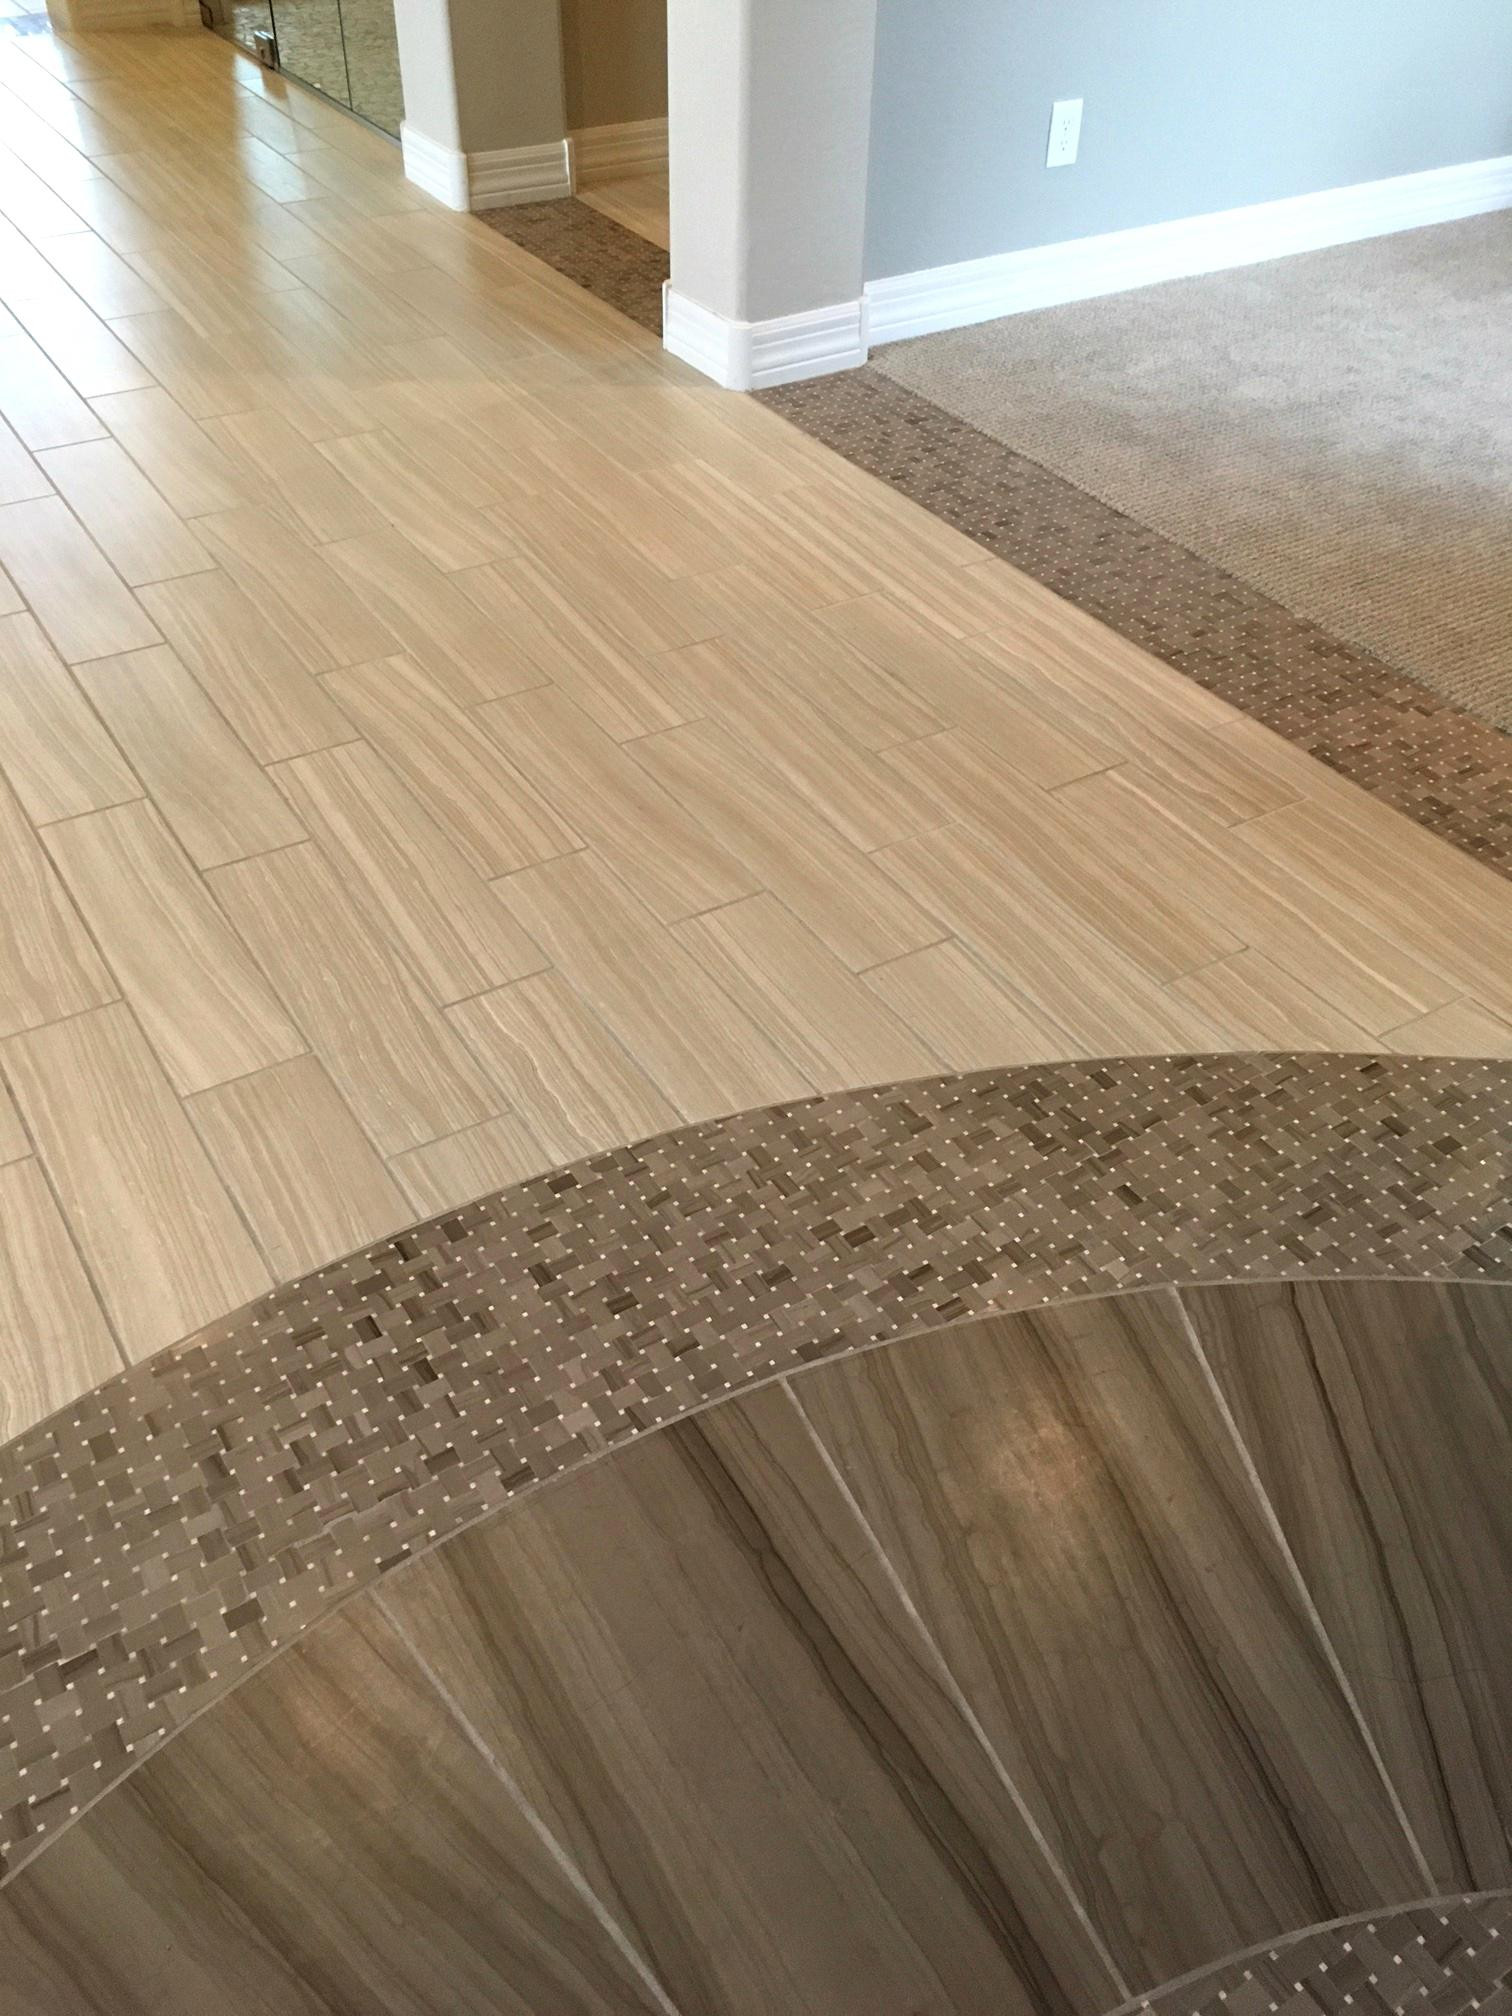 21 Elegant Hardwood Floor With Tile Inlay